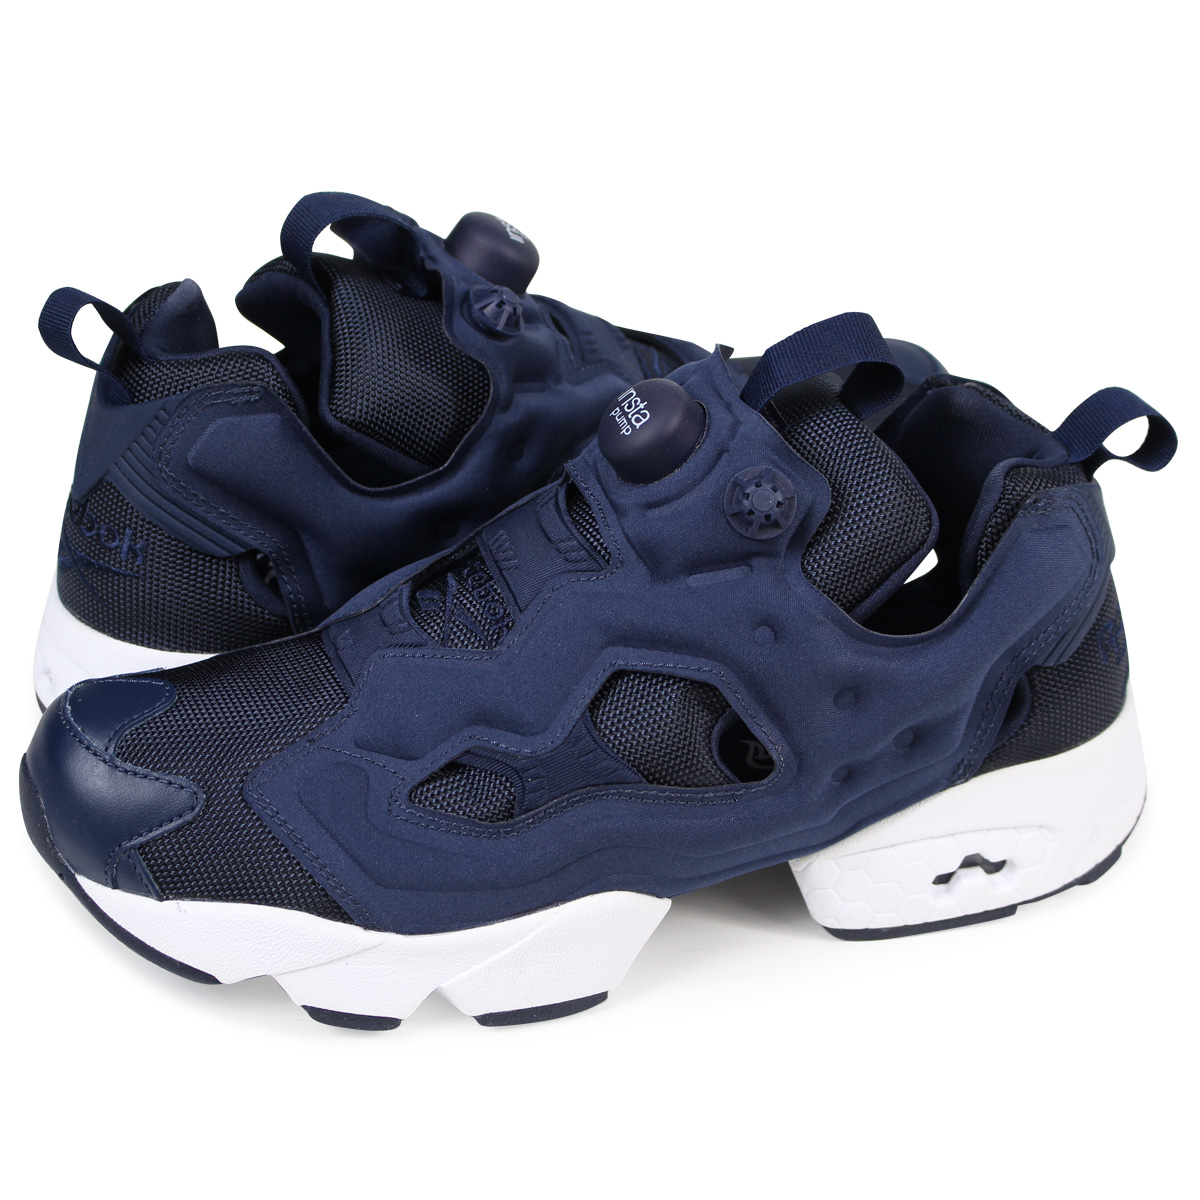 7796dad9ec14b9 Reebok Reebok INSTA PUMP FURY OG sneaker insta pump fury original mesh  leather men s women s M48559 white black unisex  7   17 new stock   regular